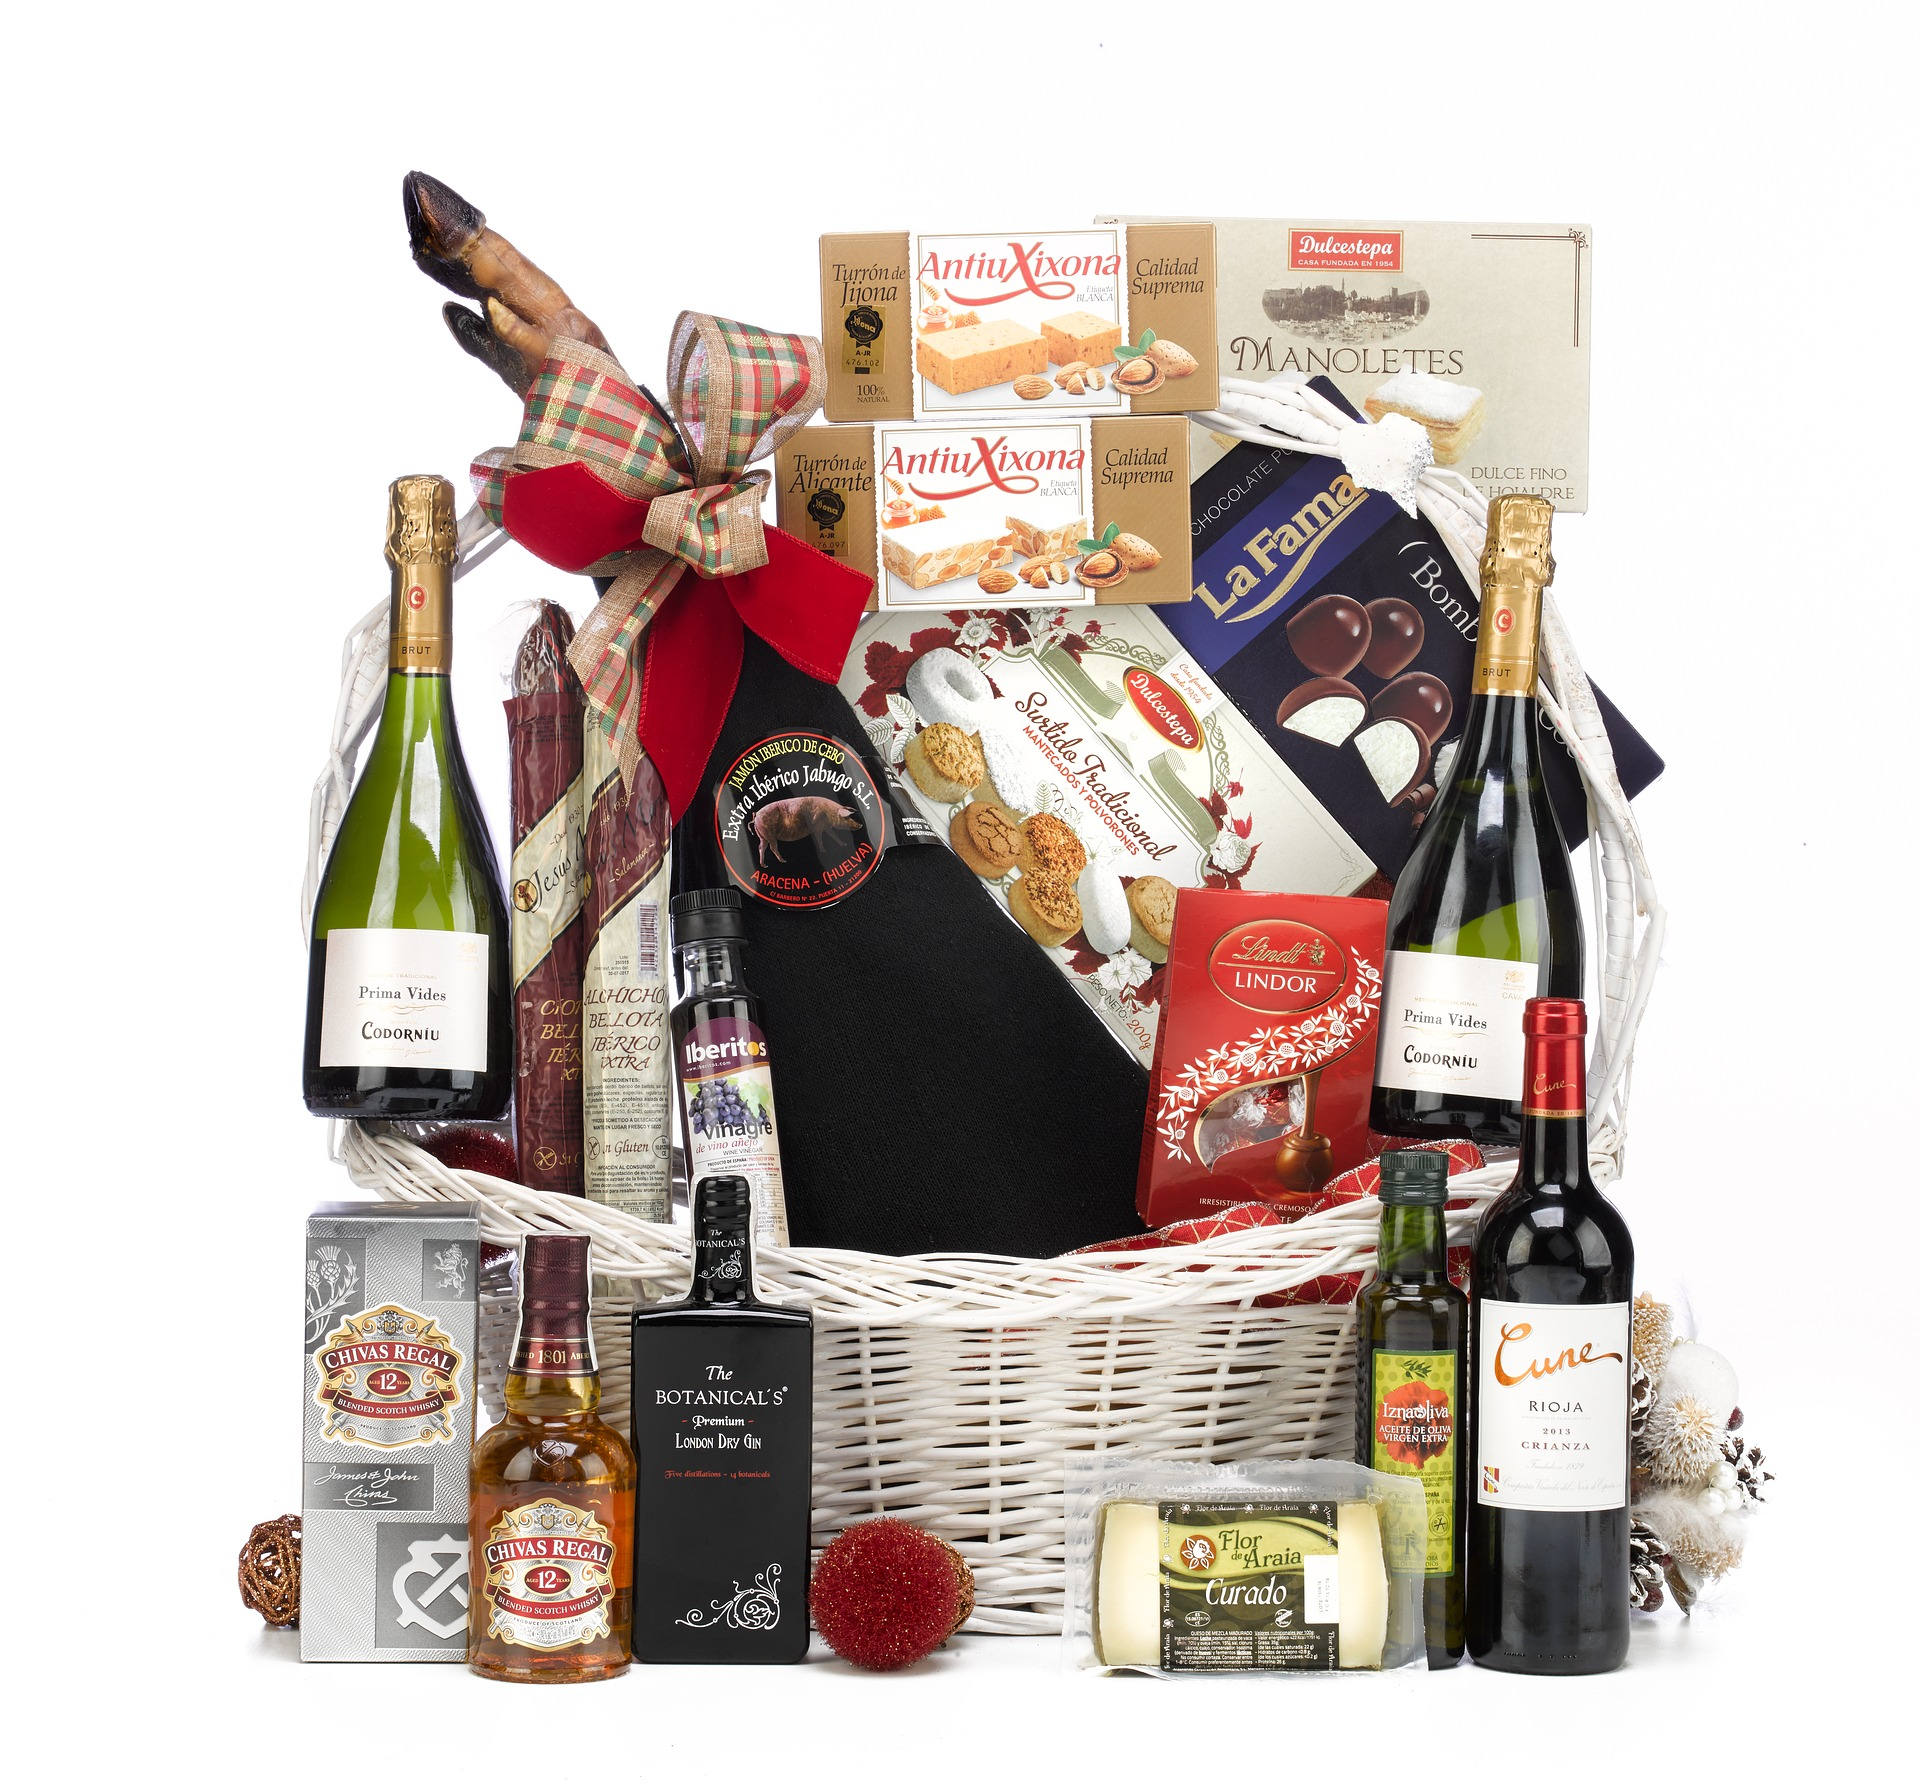 Christmas Hamper Ideas.Creating A Christmas Hamper Budget Food Hamper Stocking